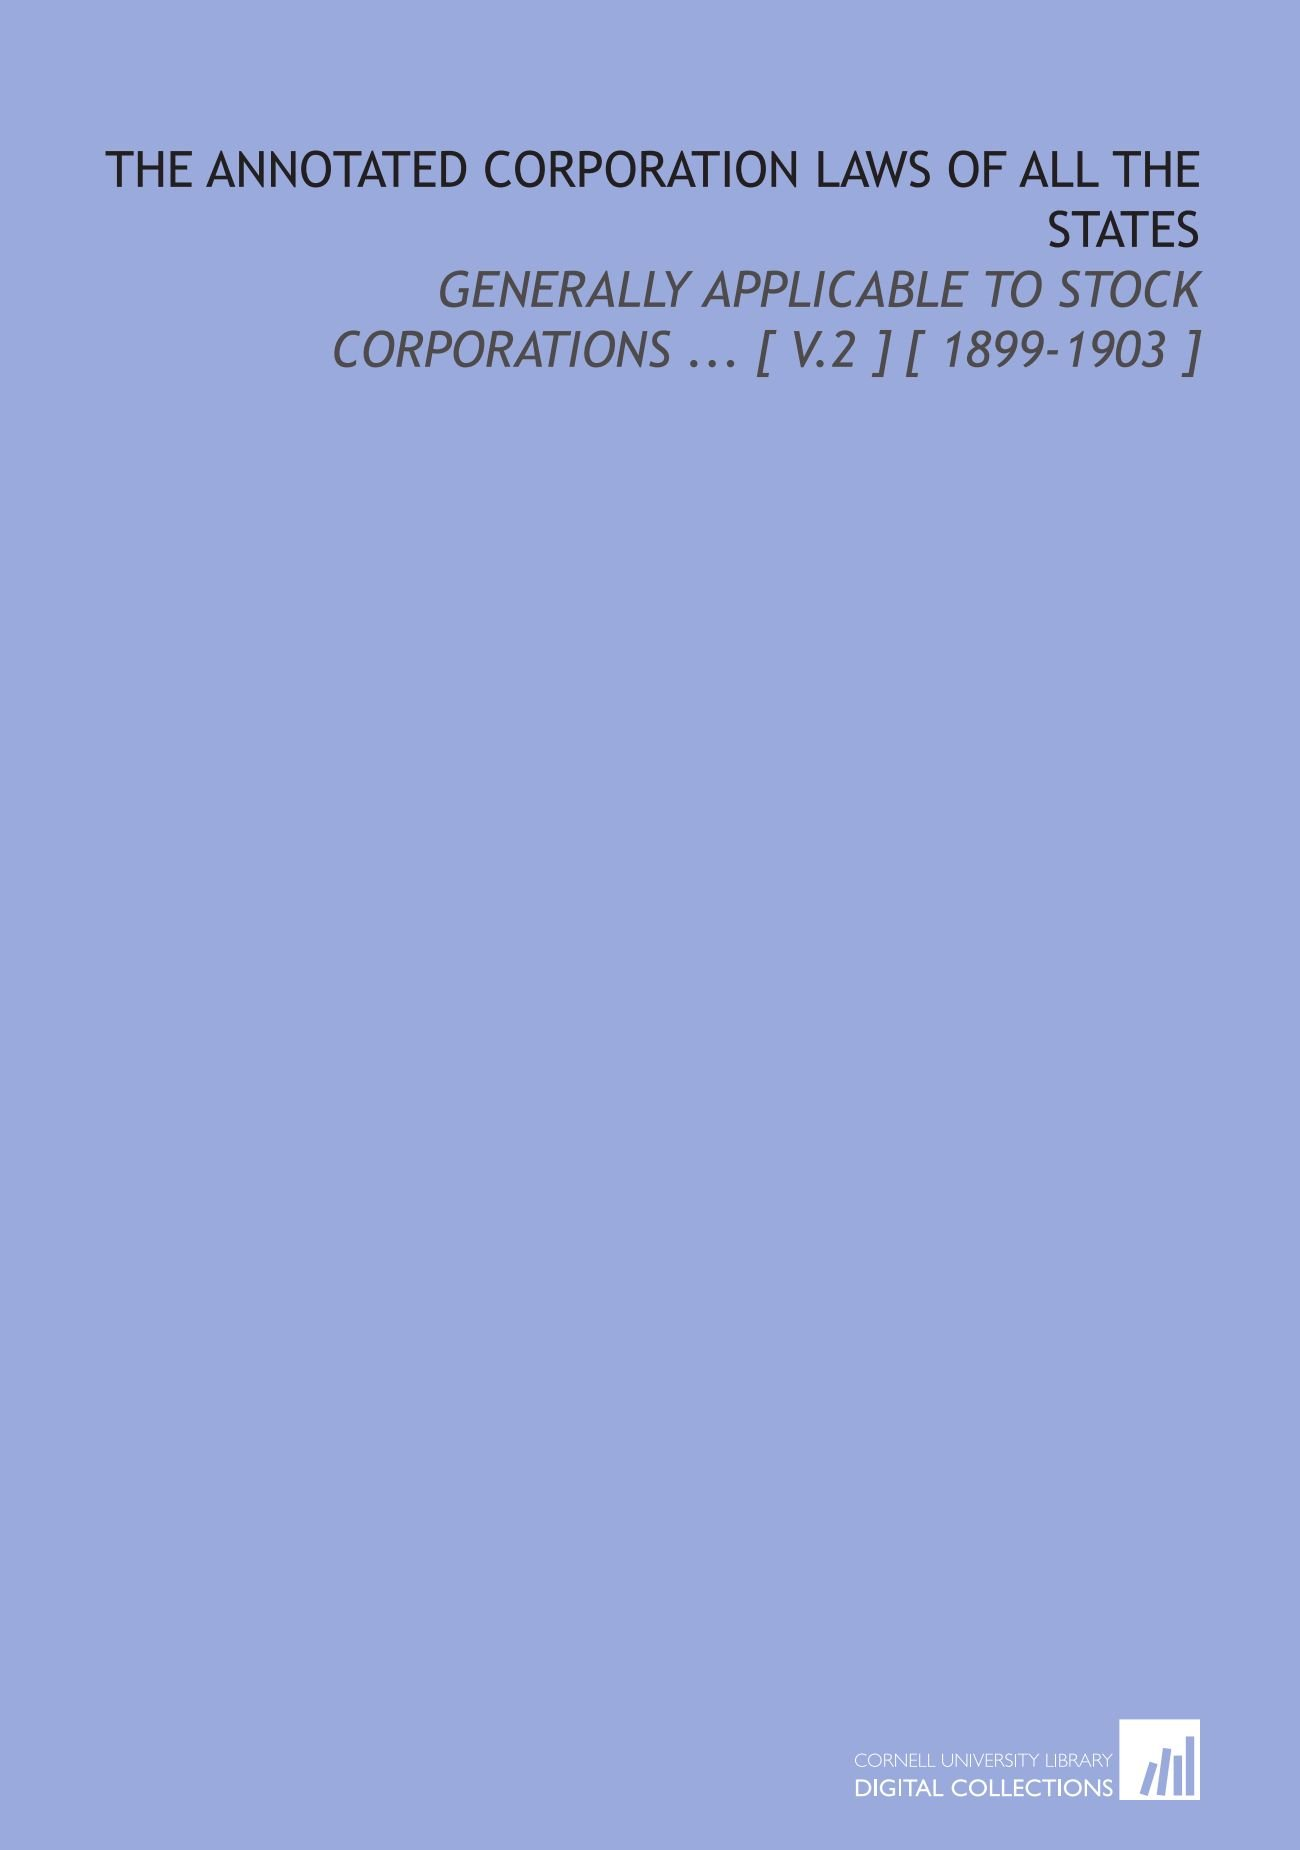 The Annotated Corporation Laws of All the States: Generally Applicable to Stock Corporations ... [ V.2 ] [ 1899-1903 ] PDF